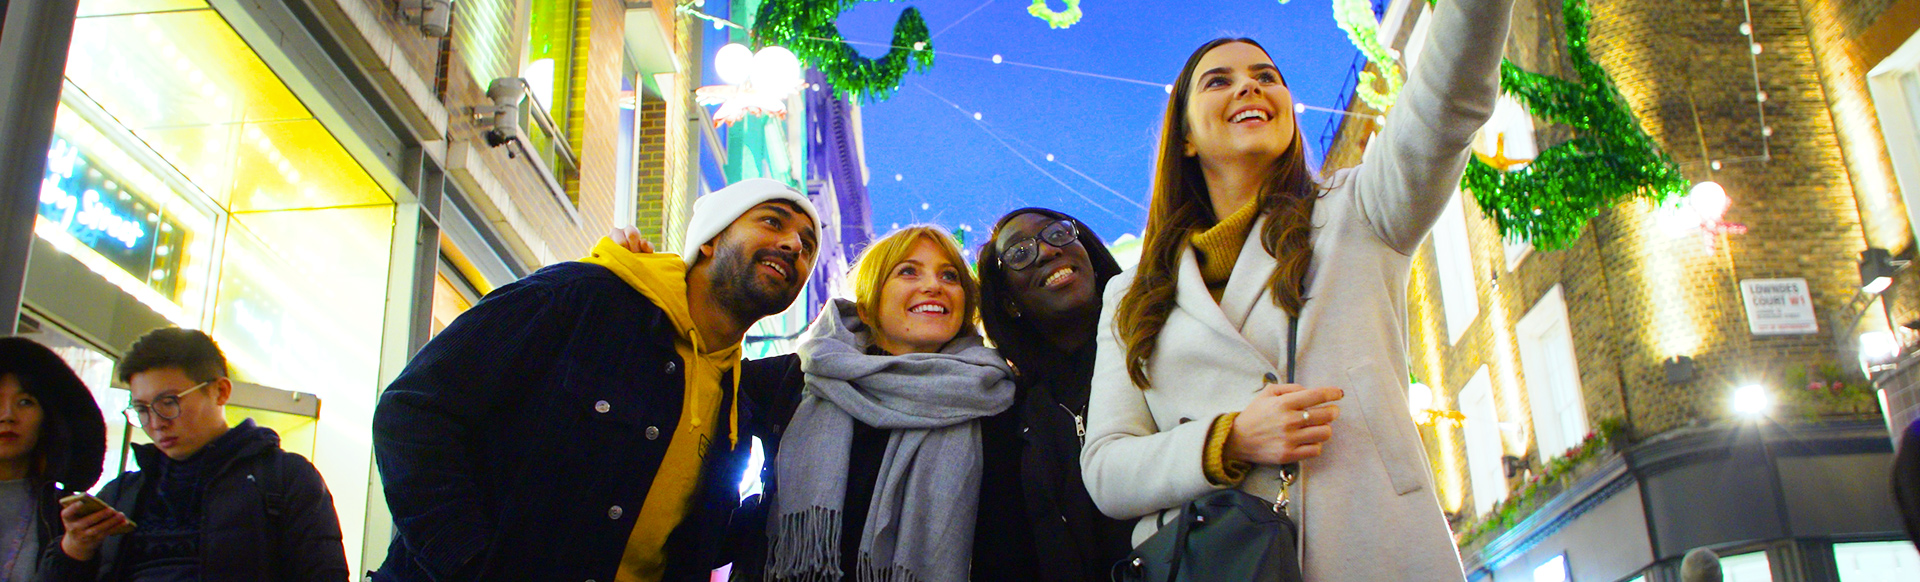 A group of four young adults takes a selfie in front of the Christmas lights on Carnaby Street, with green seahorse decorations suspended between buildings.